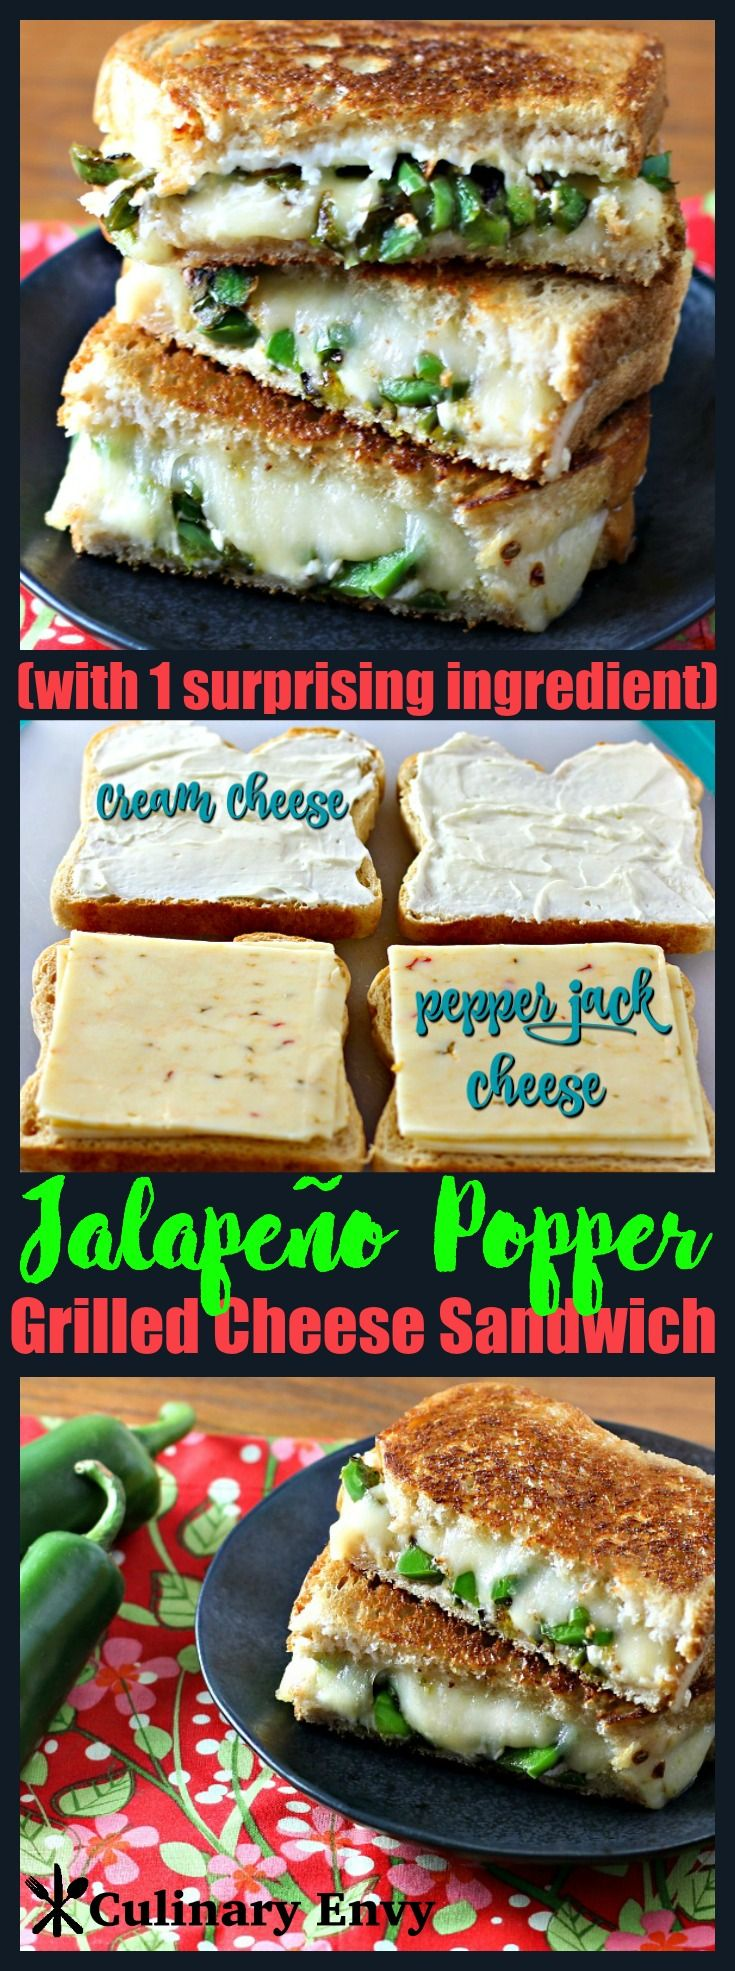 Jalapeño Popper Grilled Cheese Sandwich is like everyone's favorite jalapeño popper appetizer melted between golden, buttery bread with 2 creamy cheeses and 1 crunchy surprise! It's the grown up version of the classic grilled cheese sandwich lunch meal! Click to read more!